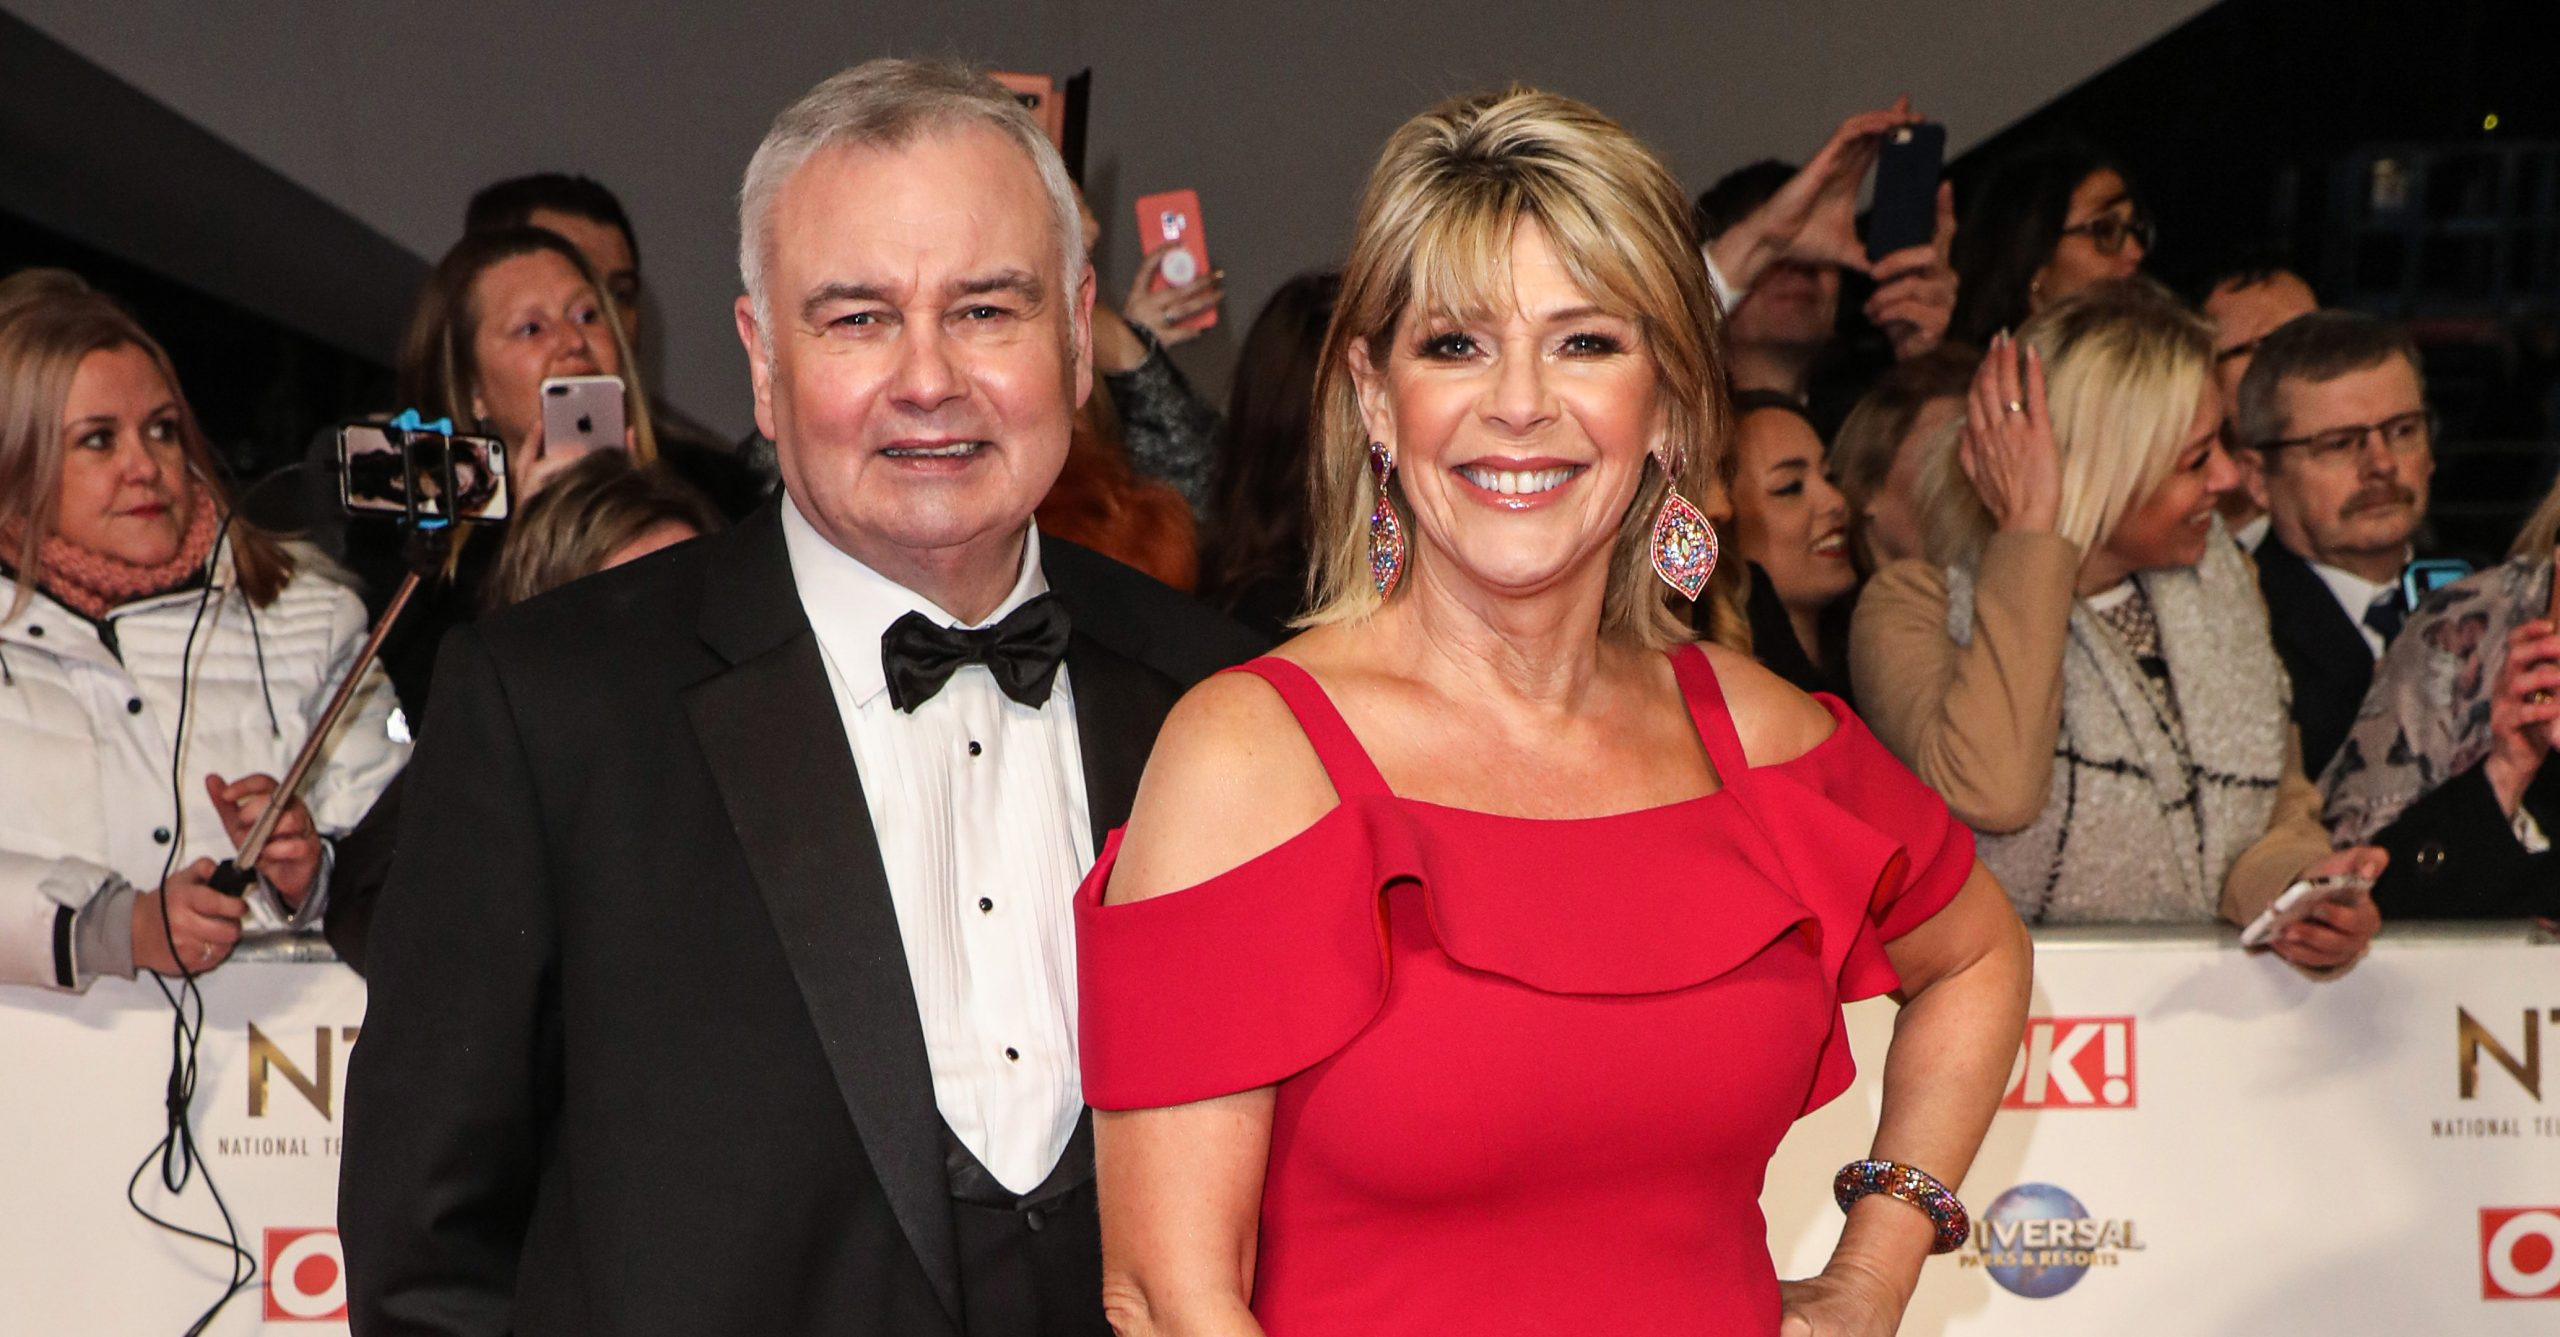 Eamonn Holmes and Ruth Langsford celebrate son Jack's 18th birthday with sweet tributes